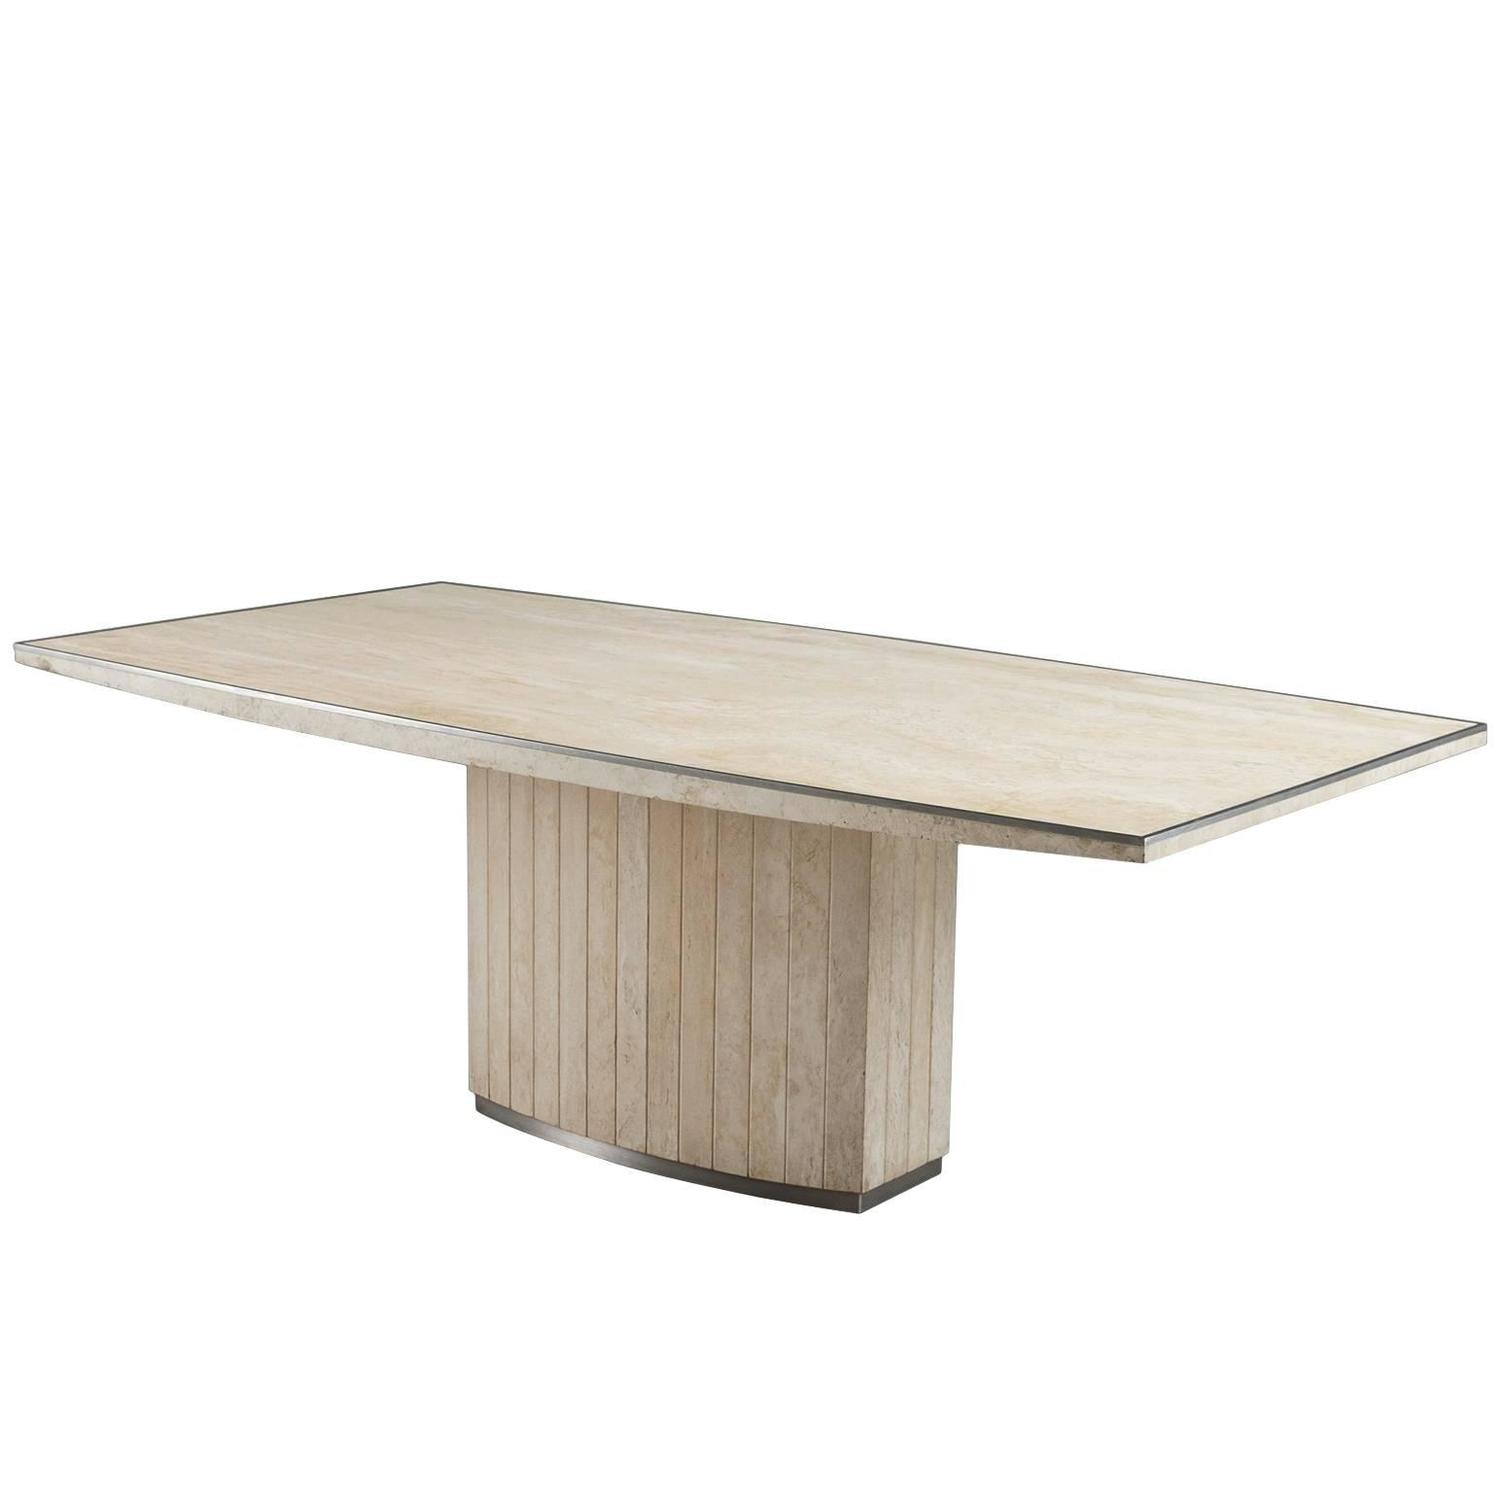 Willy Rizzo Travertine Dining Table For Sale at 1stdibs